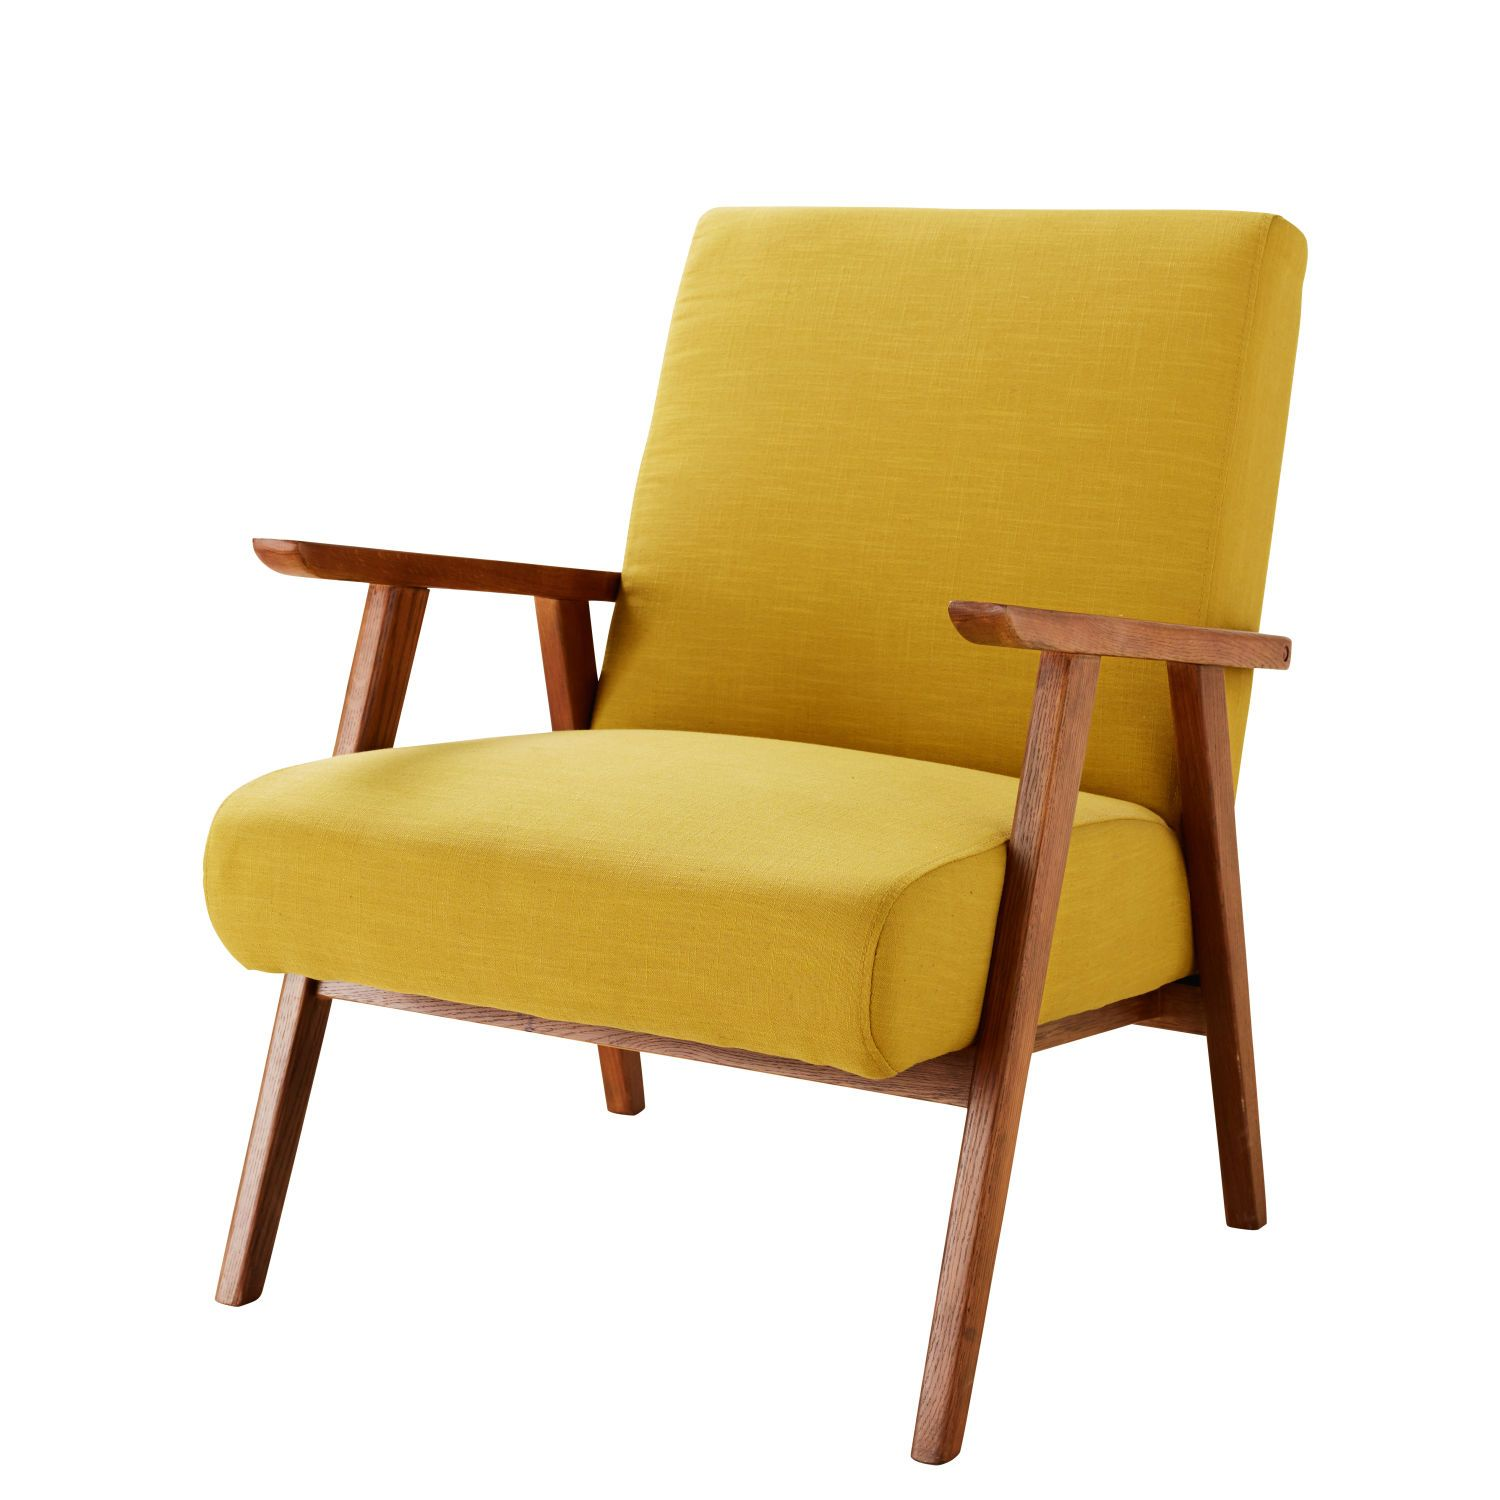 Retro Sessel Sale Vintage Mustard Yellow Armchair Maisons Du Monde Chairs In